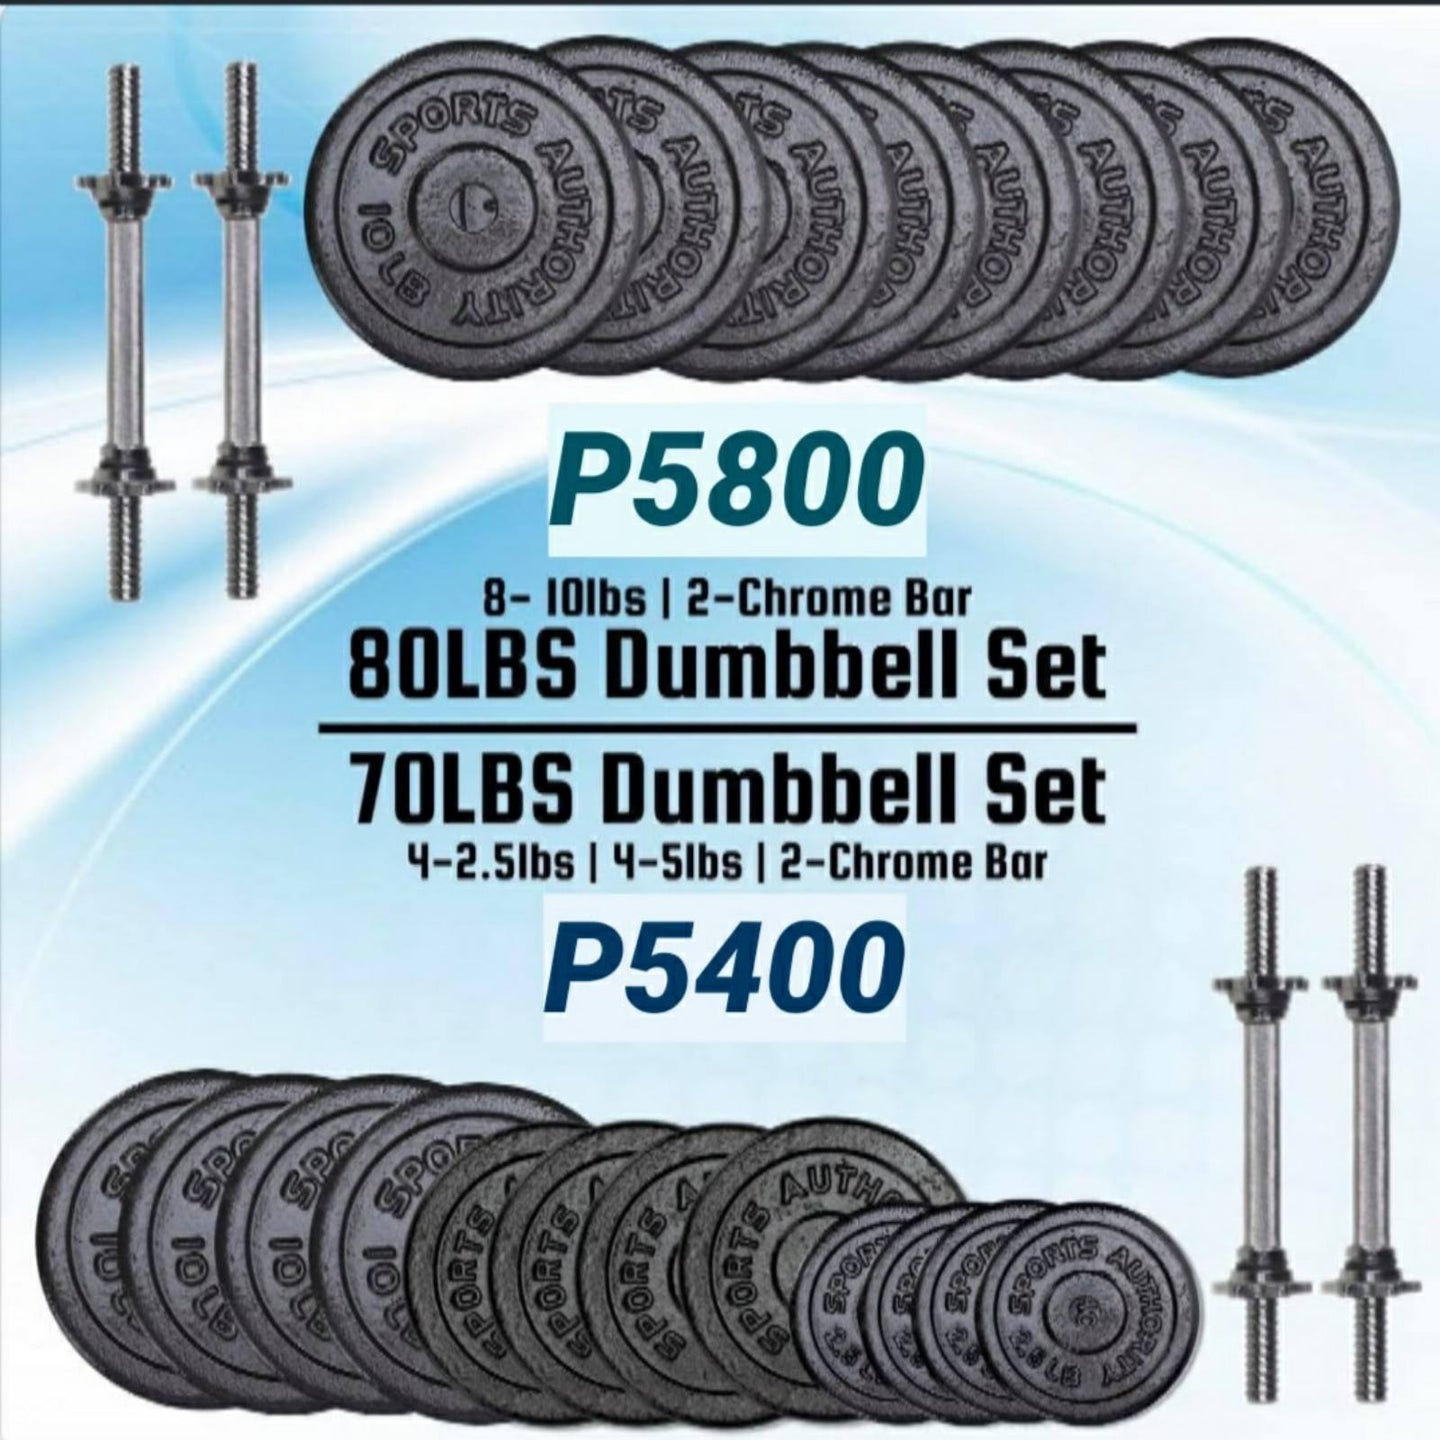 70 or 80lbs Dumbbell Set